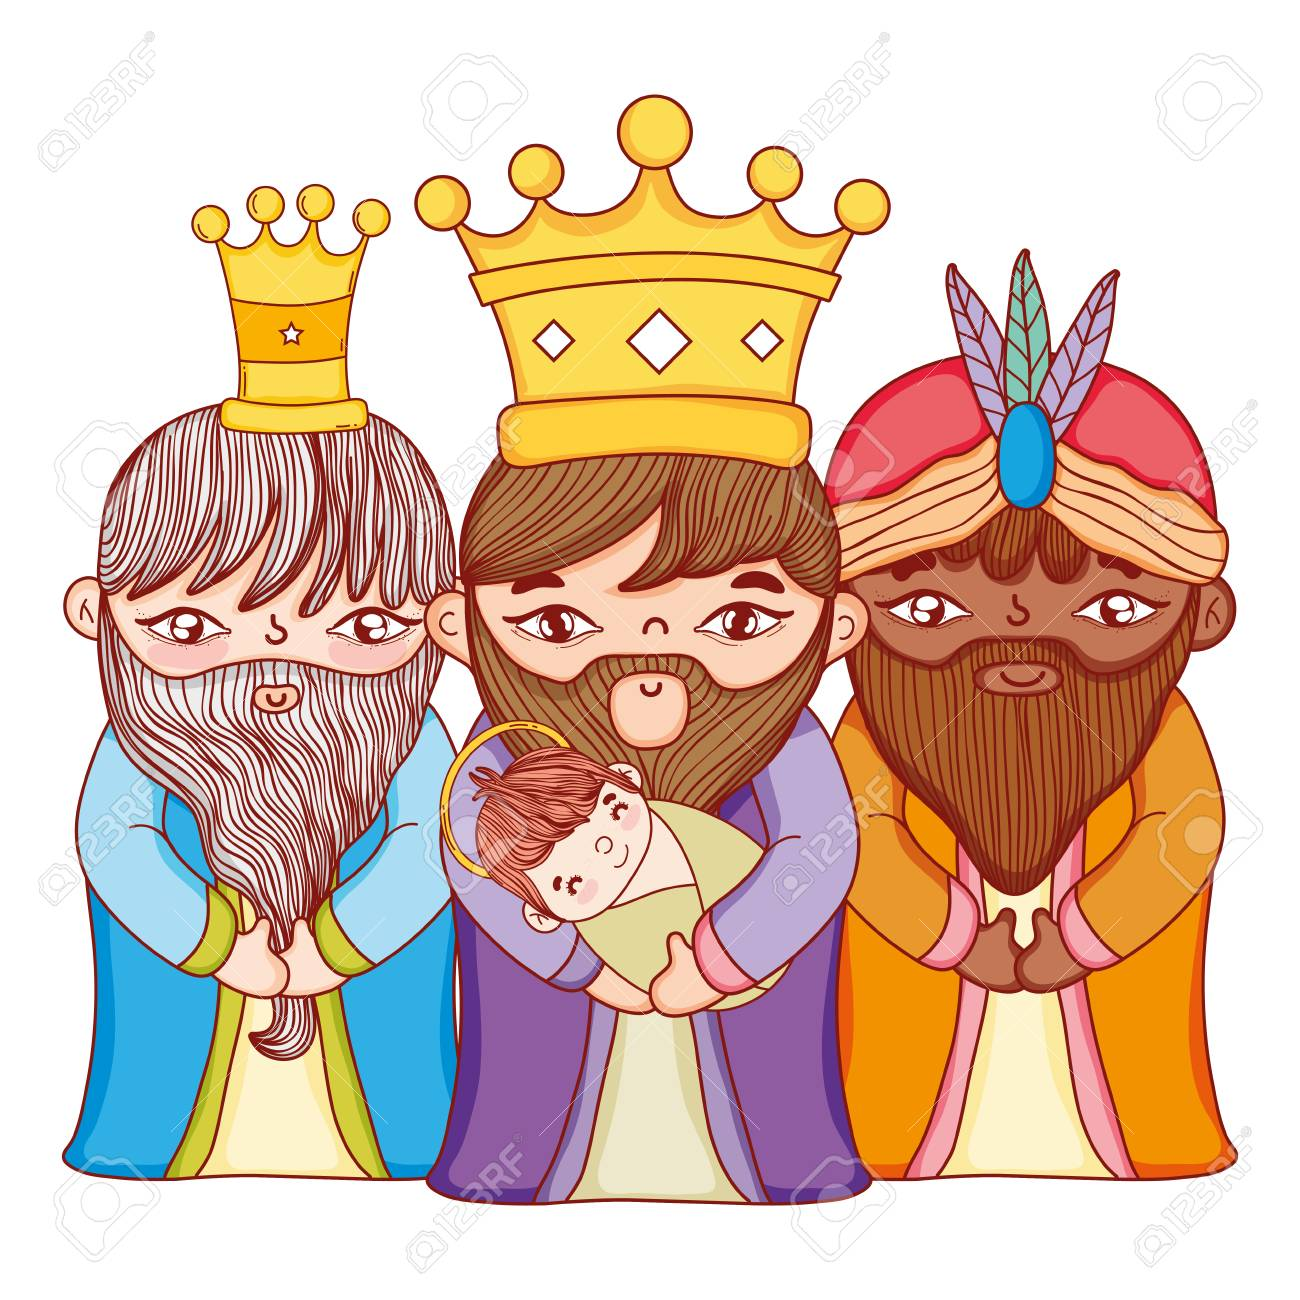 Christmas Nativity Scene Cartoon Royalty Free Cliparts Vectors And Stock Illustration Image 110809938 Are you searching for cartoon crown png images or vector? christmas nativity scene cartoon